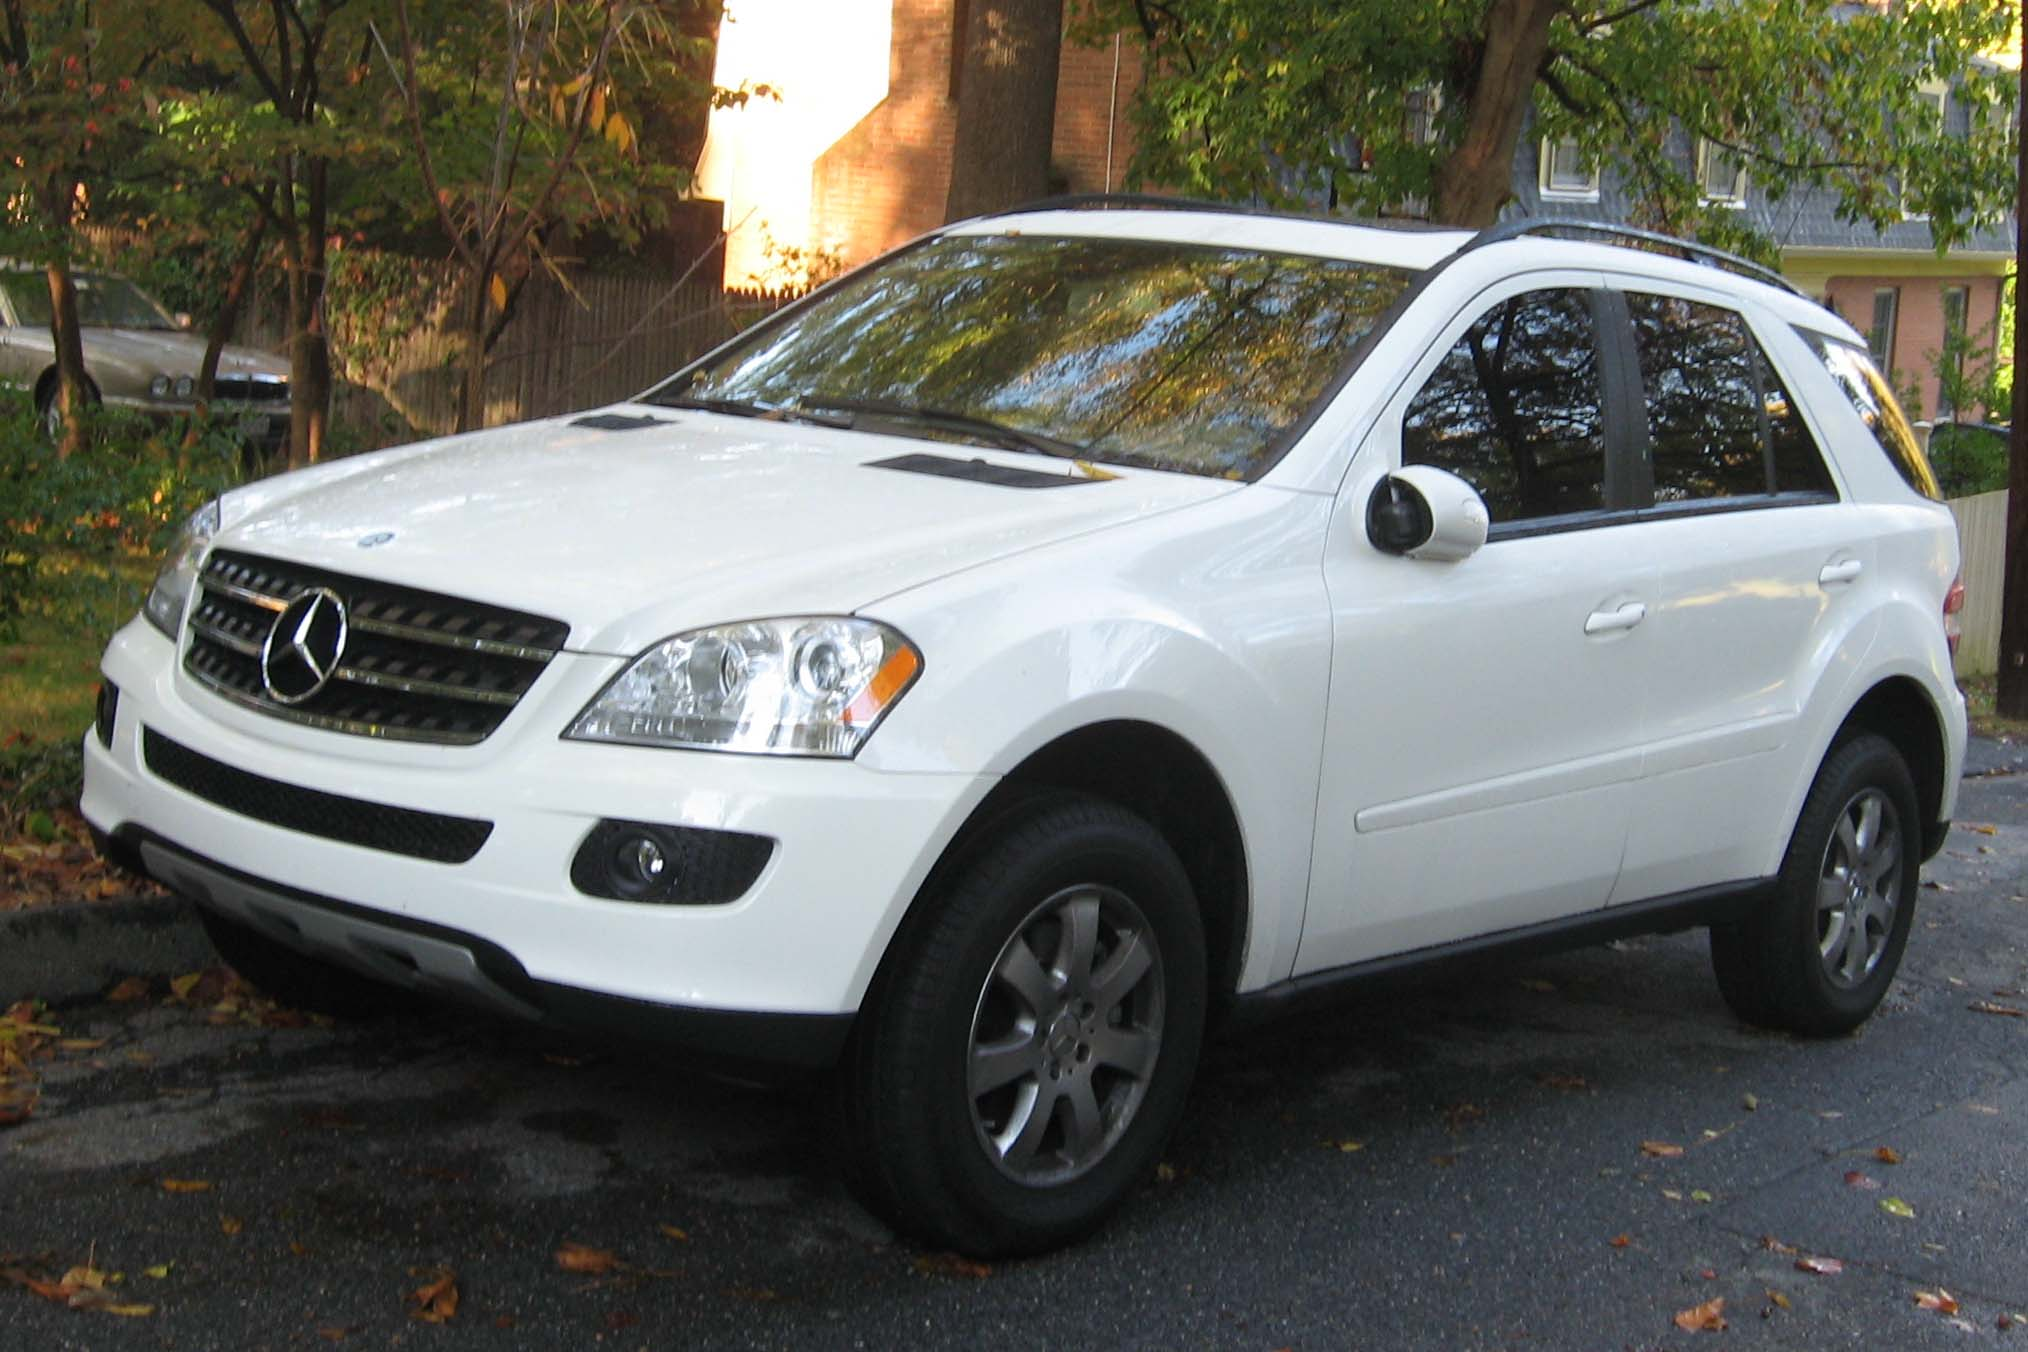 Mercedes benz ml 350 technical details history photos on for Mercedes benz escondido parts